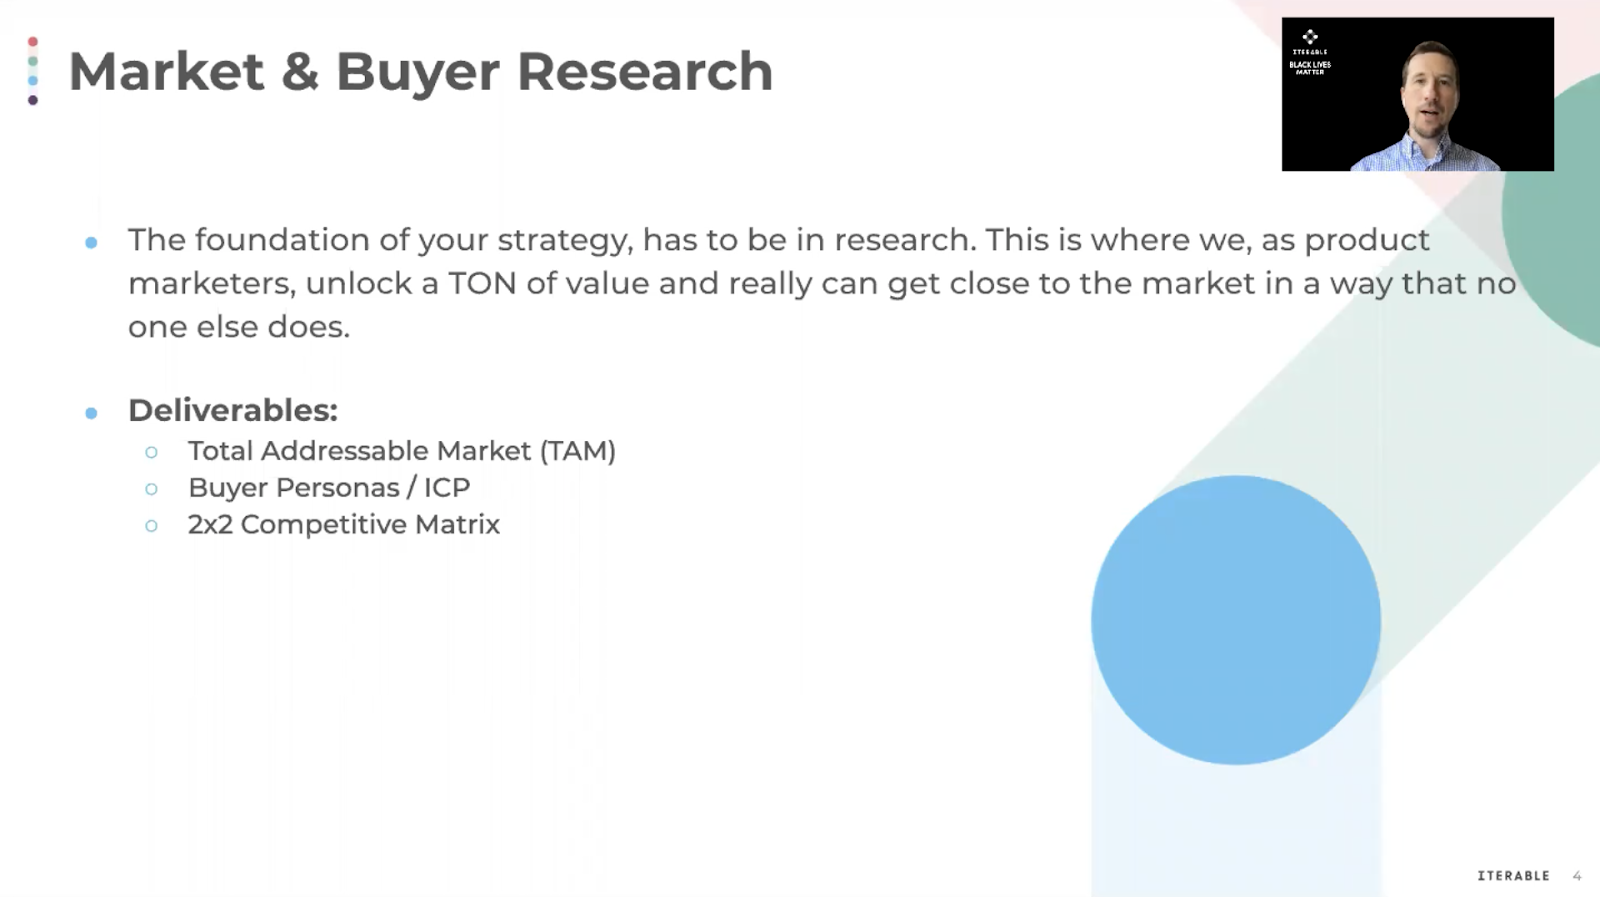 The foundation of the GTM process is initially built on market and buyer research.